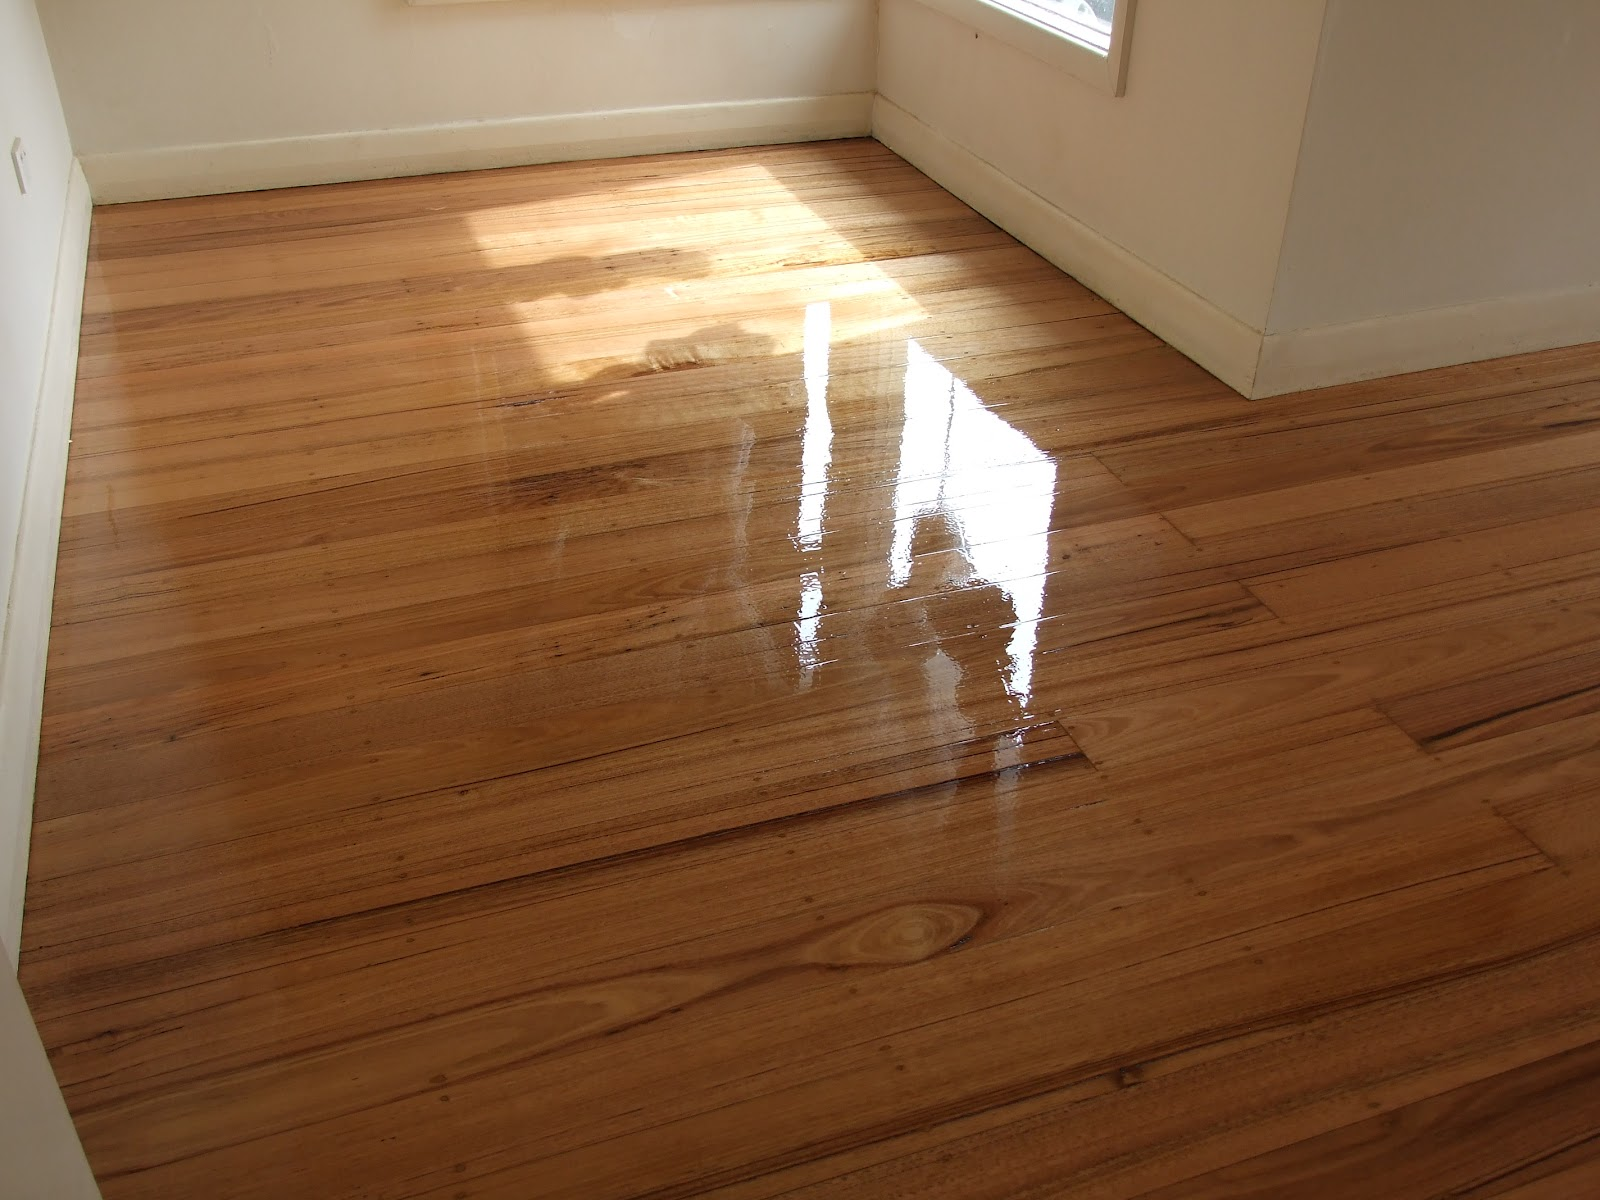 Hardwood floor finishes flooring ideas home for Hardwood wood flooring